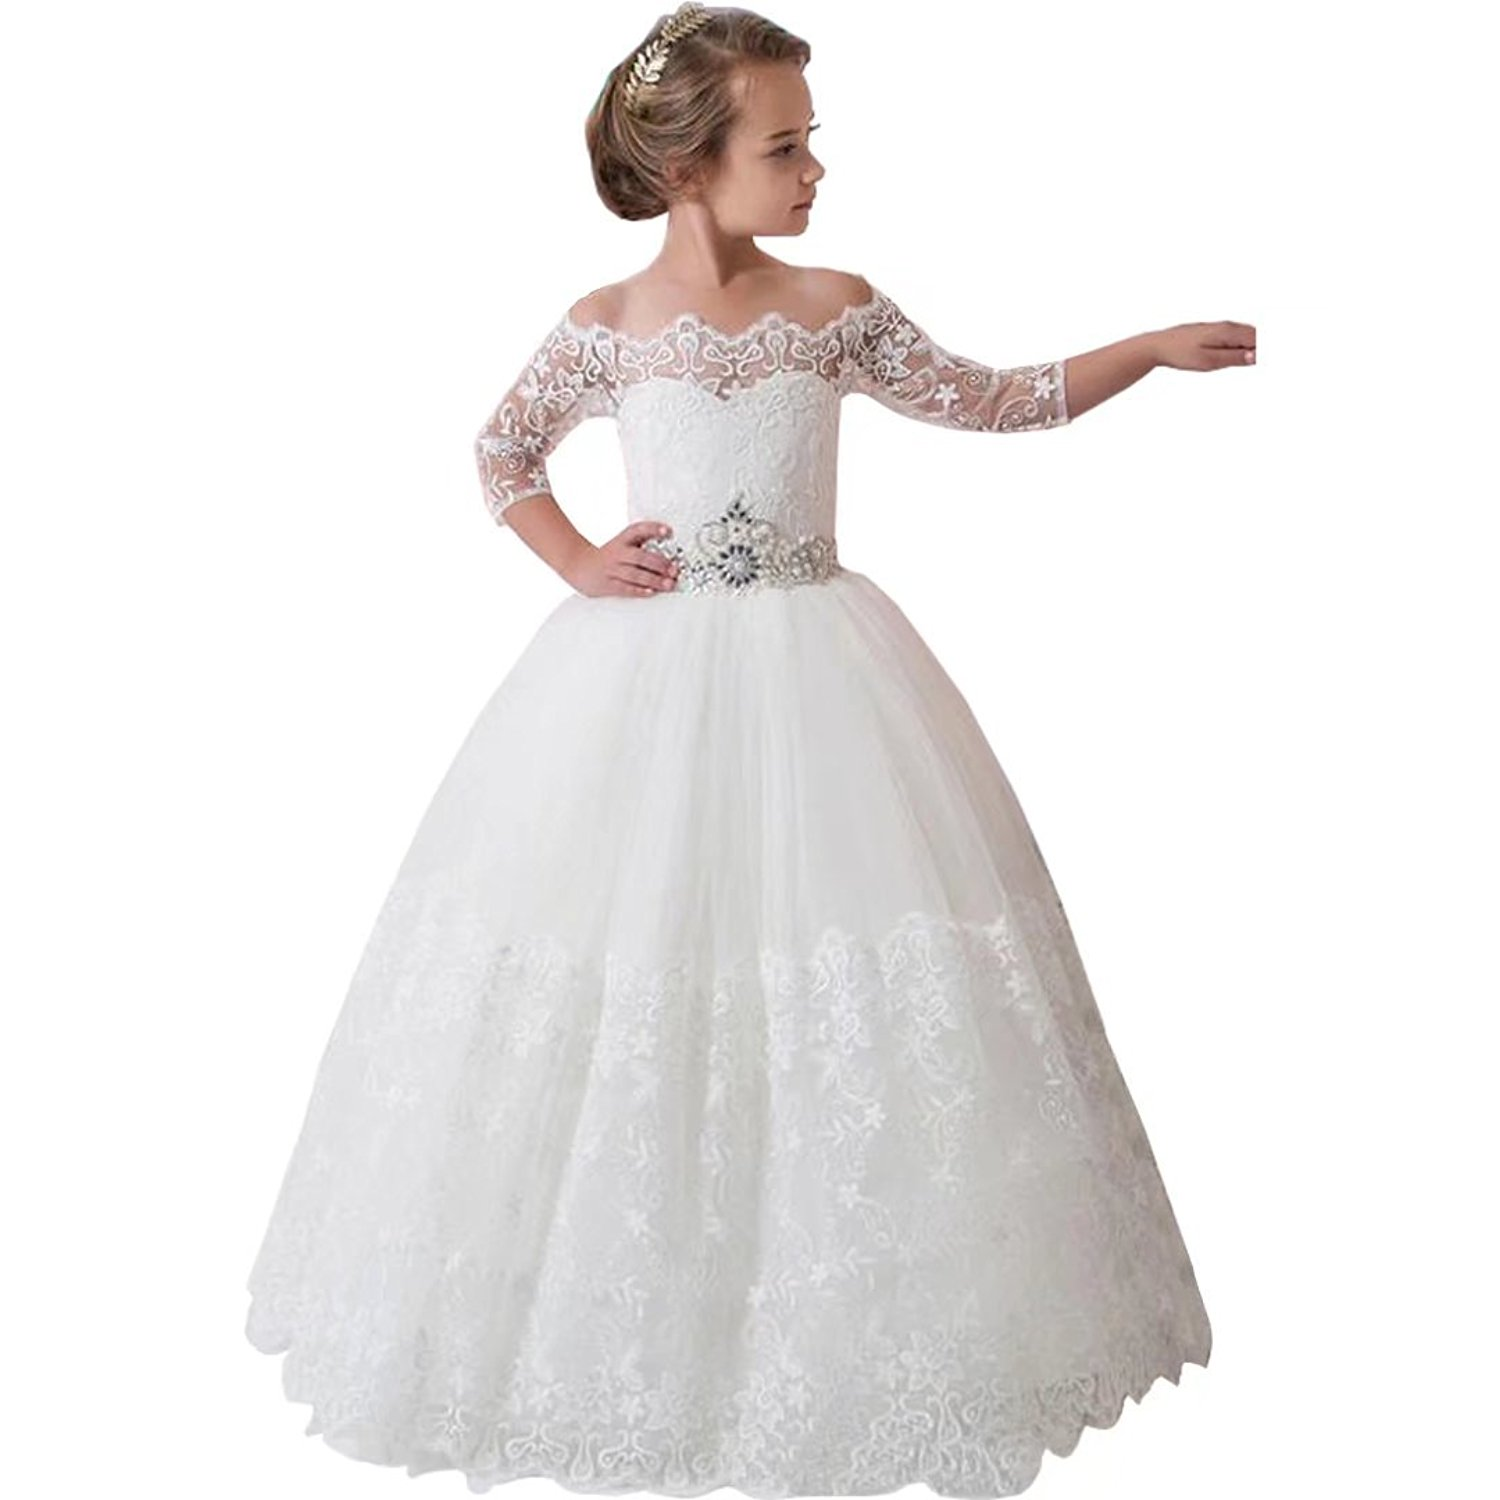 9e6cb50afa Get Quotations · Suiun Dress Flower Girls Dress With Sleeves Birthday Dress  Lace Tulle Skirt First Communion Dress